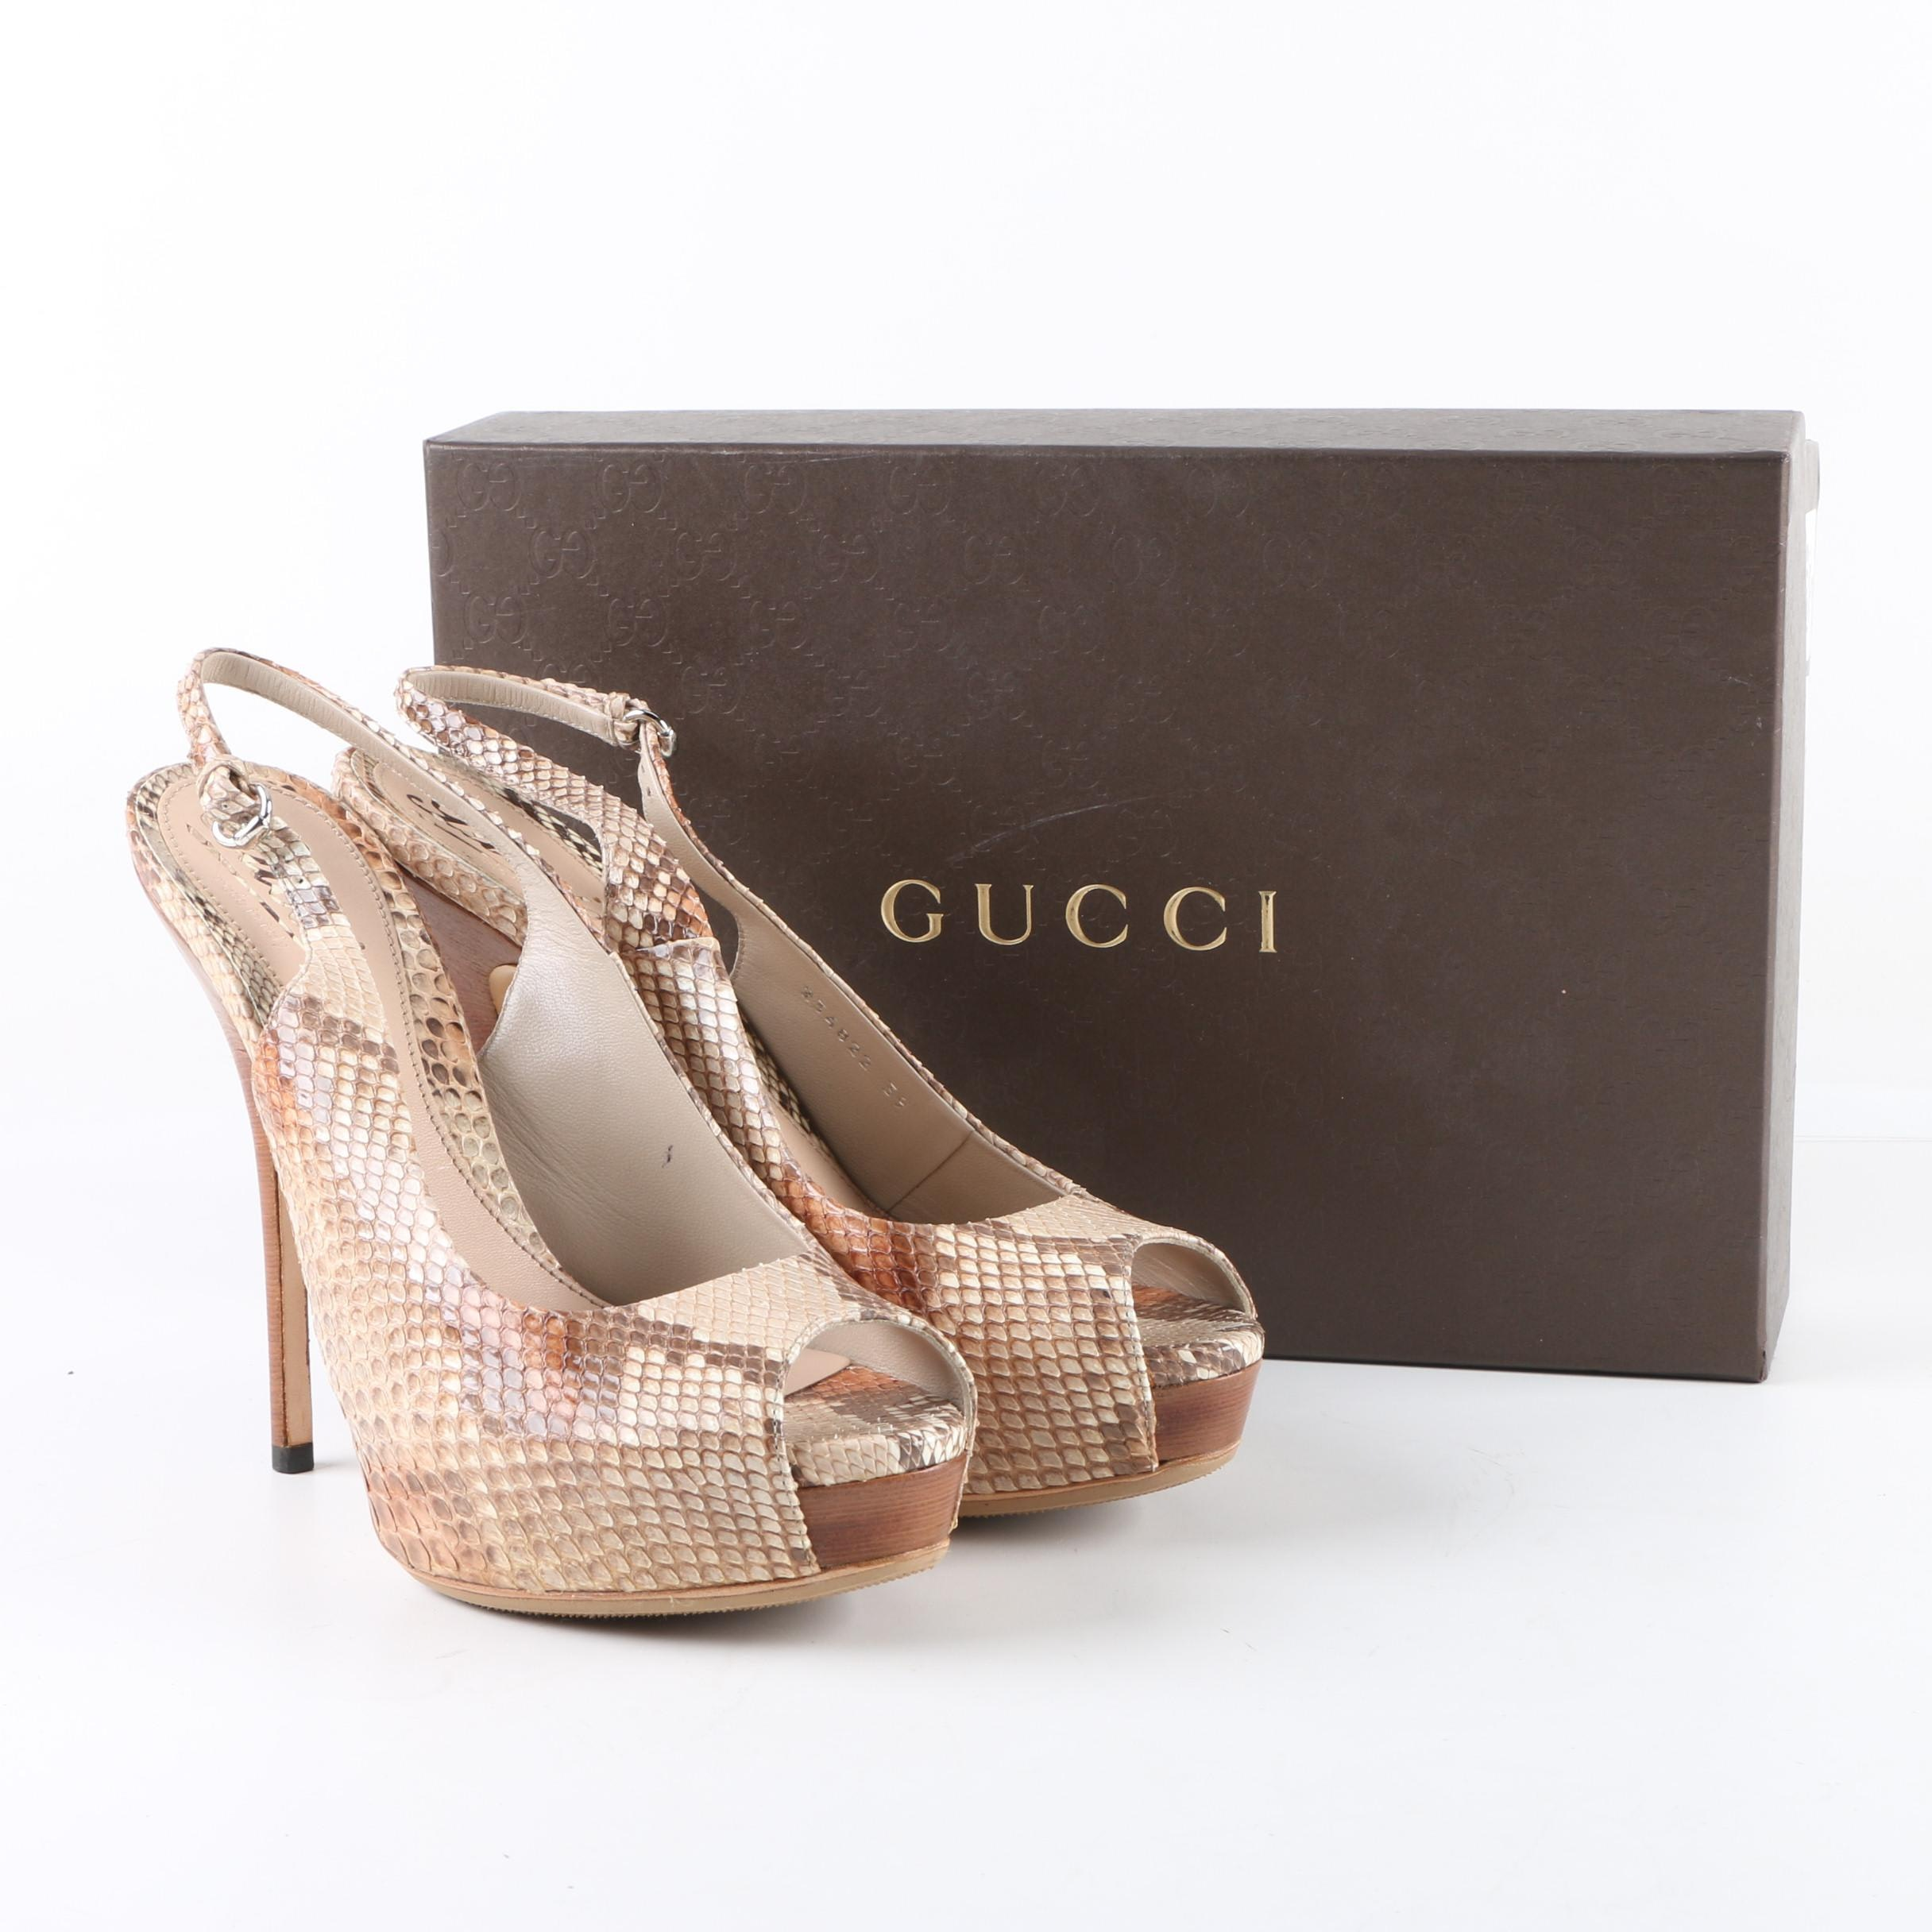 Gucci Beige and Brown Python Skin Platform Pumps